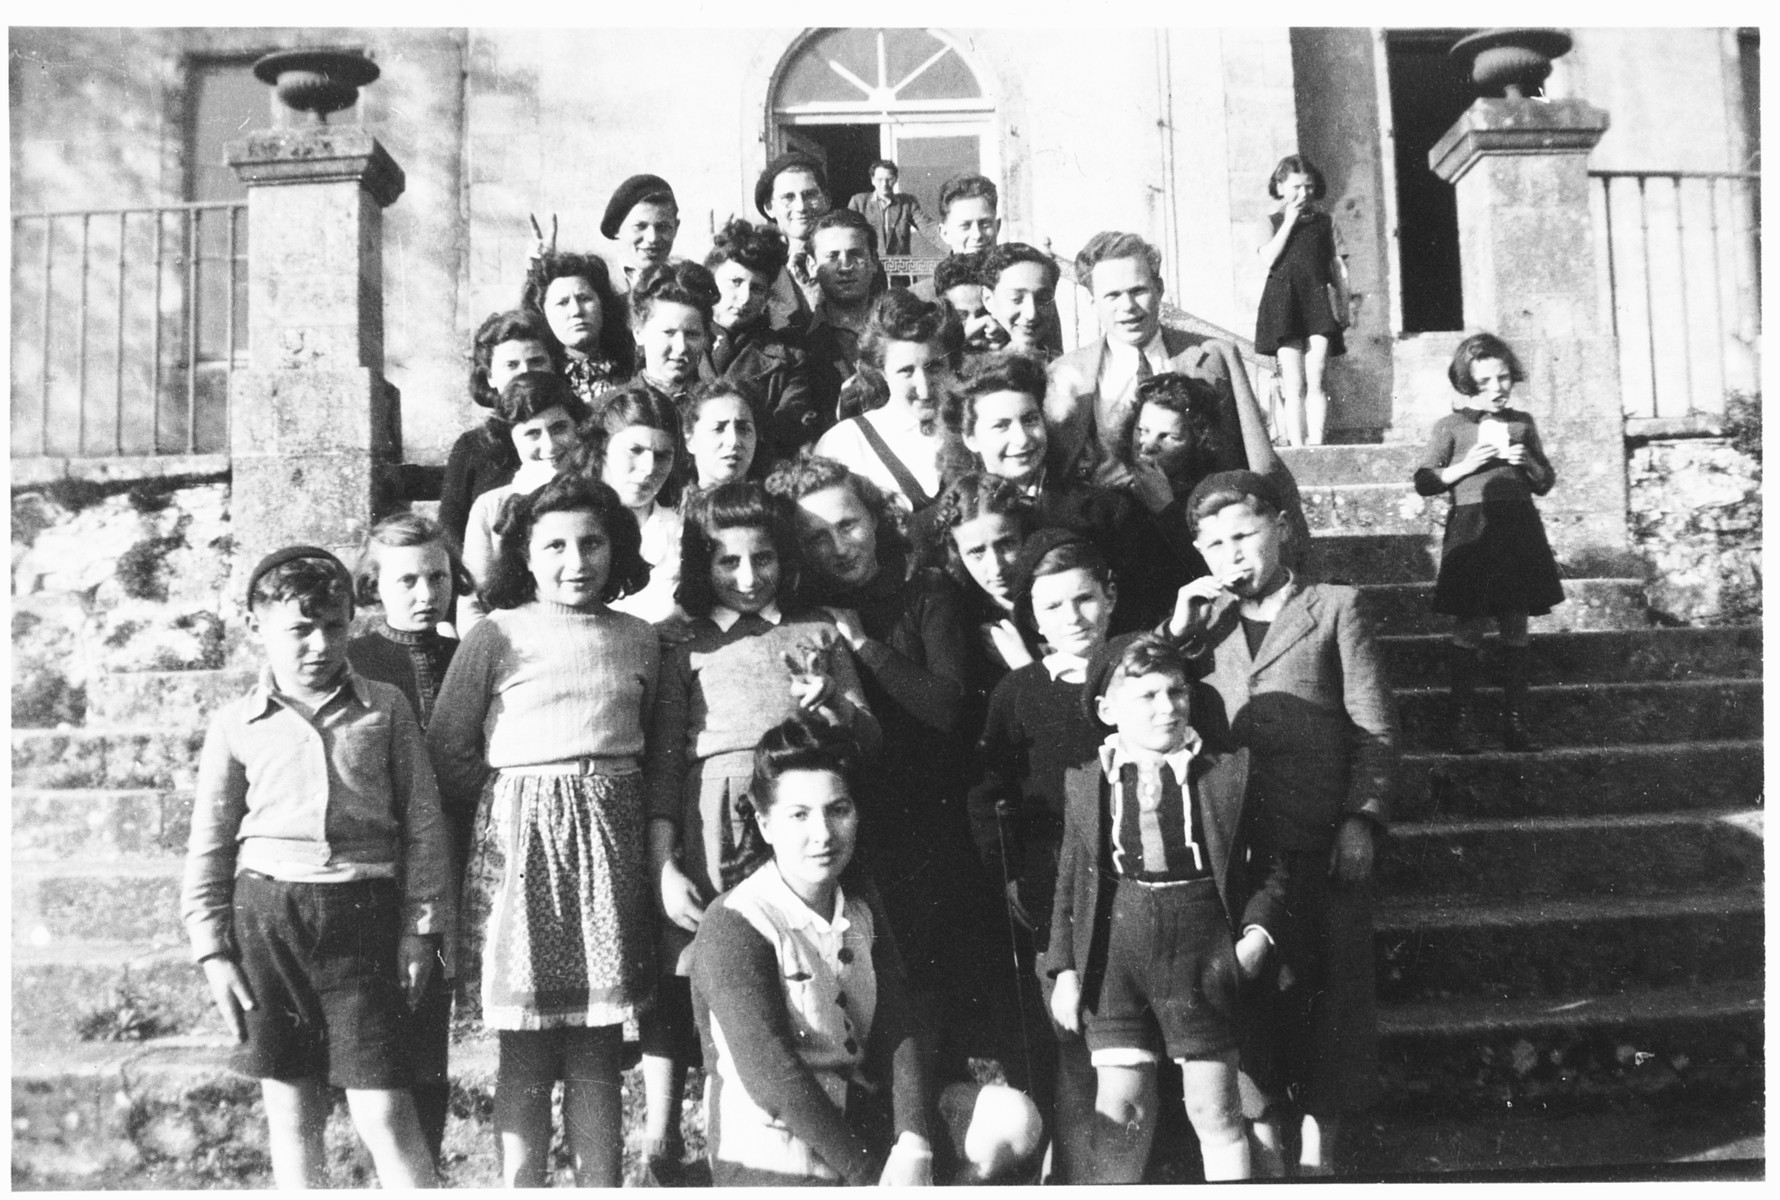 Group portrait of Jewish DP youth on the steps of the La Borie children's home.  Among those pictured are Ruth Zarnicer, Hugo Zarnicer, Rachel Bensanson, Herbert Karliner and Charles Hausman (back row, left).